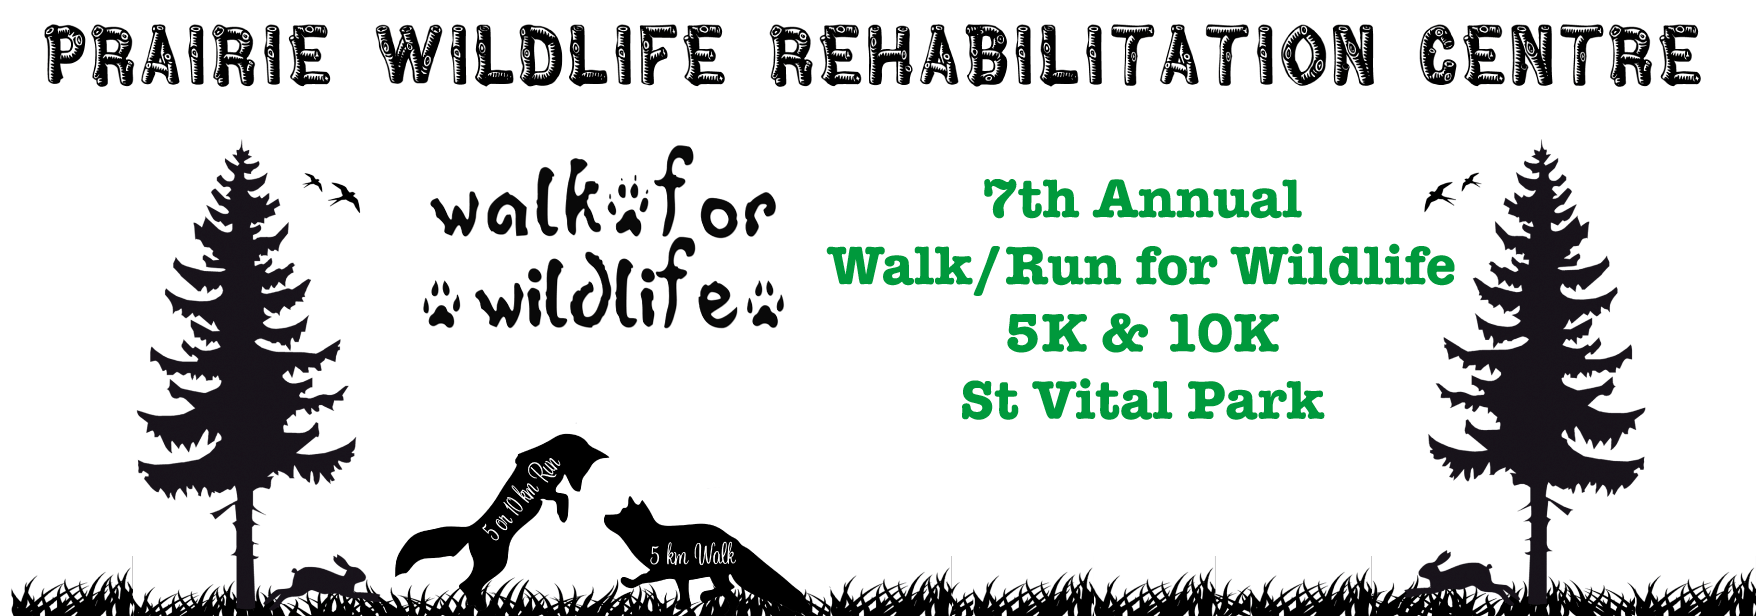 7th Annual Walk/Run for Wildlife